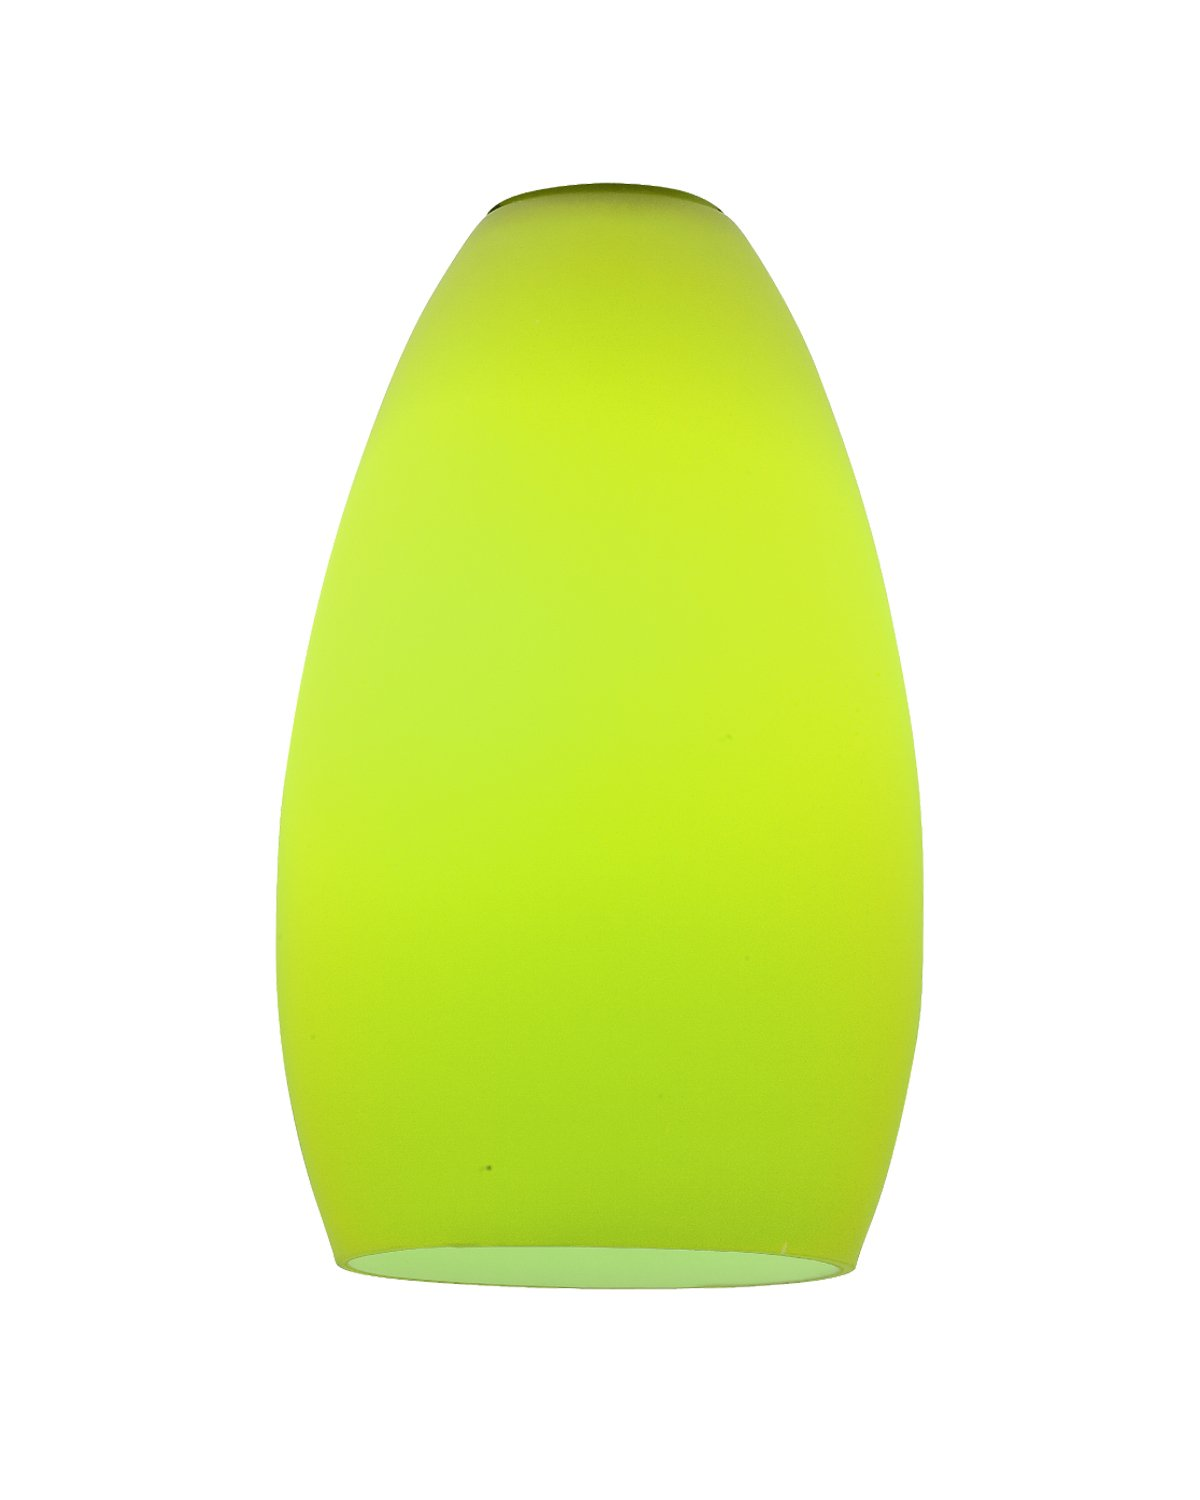 Use a Lime Green Lamp Shade To Spice Up Your Room